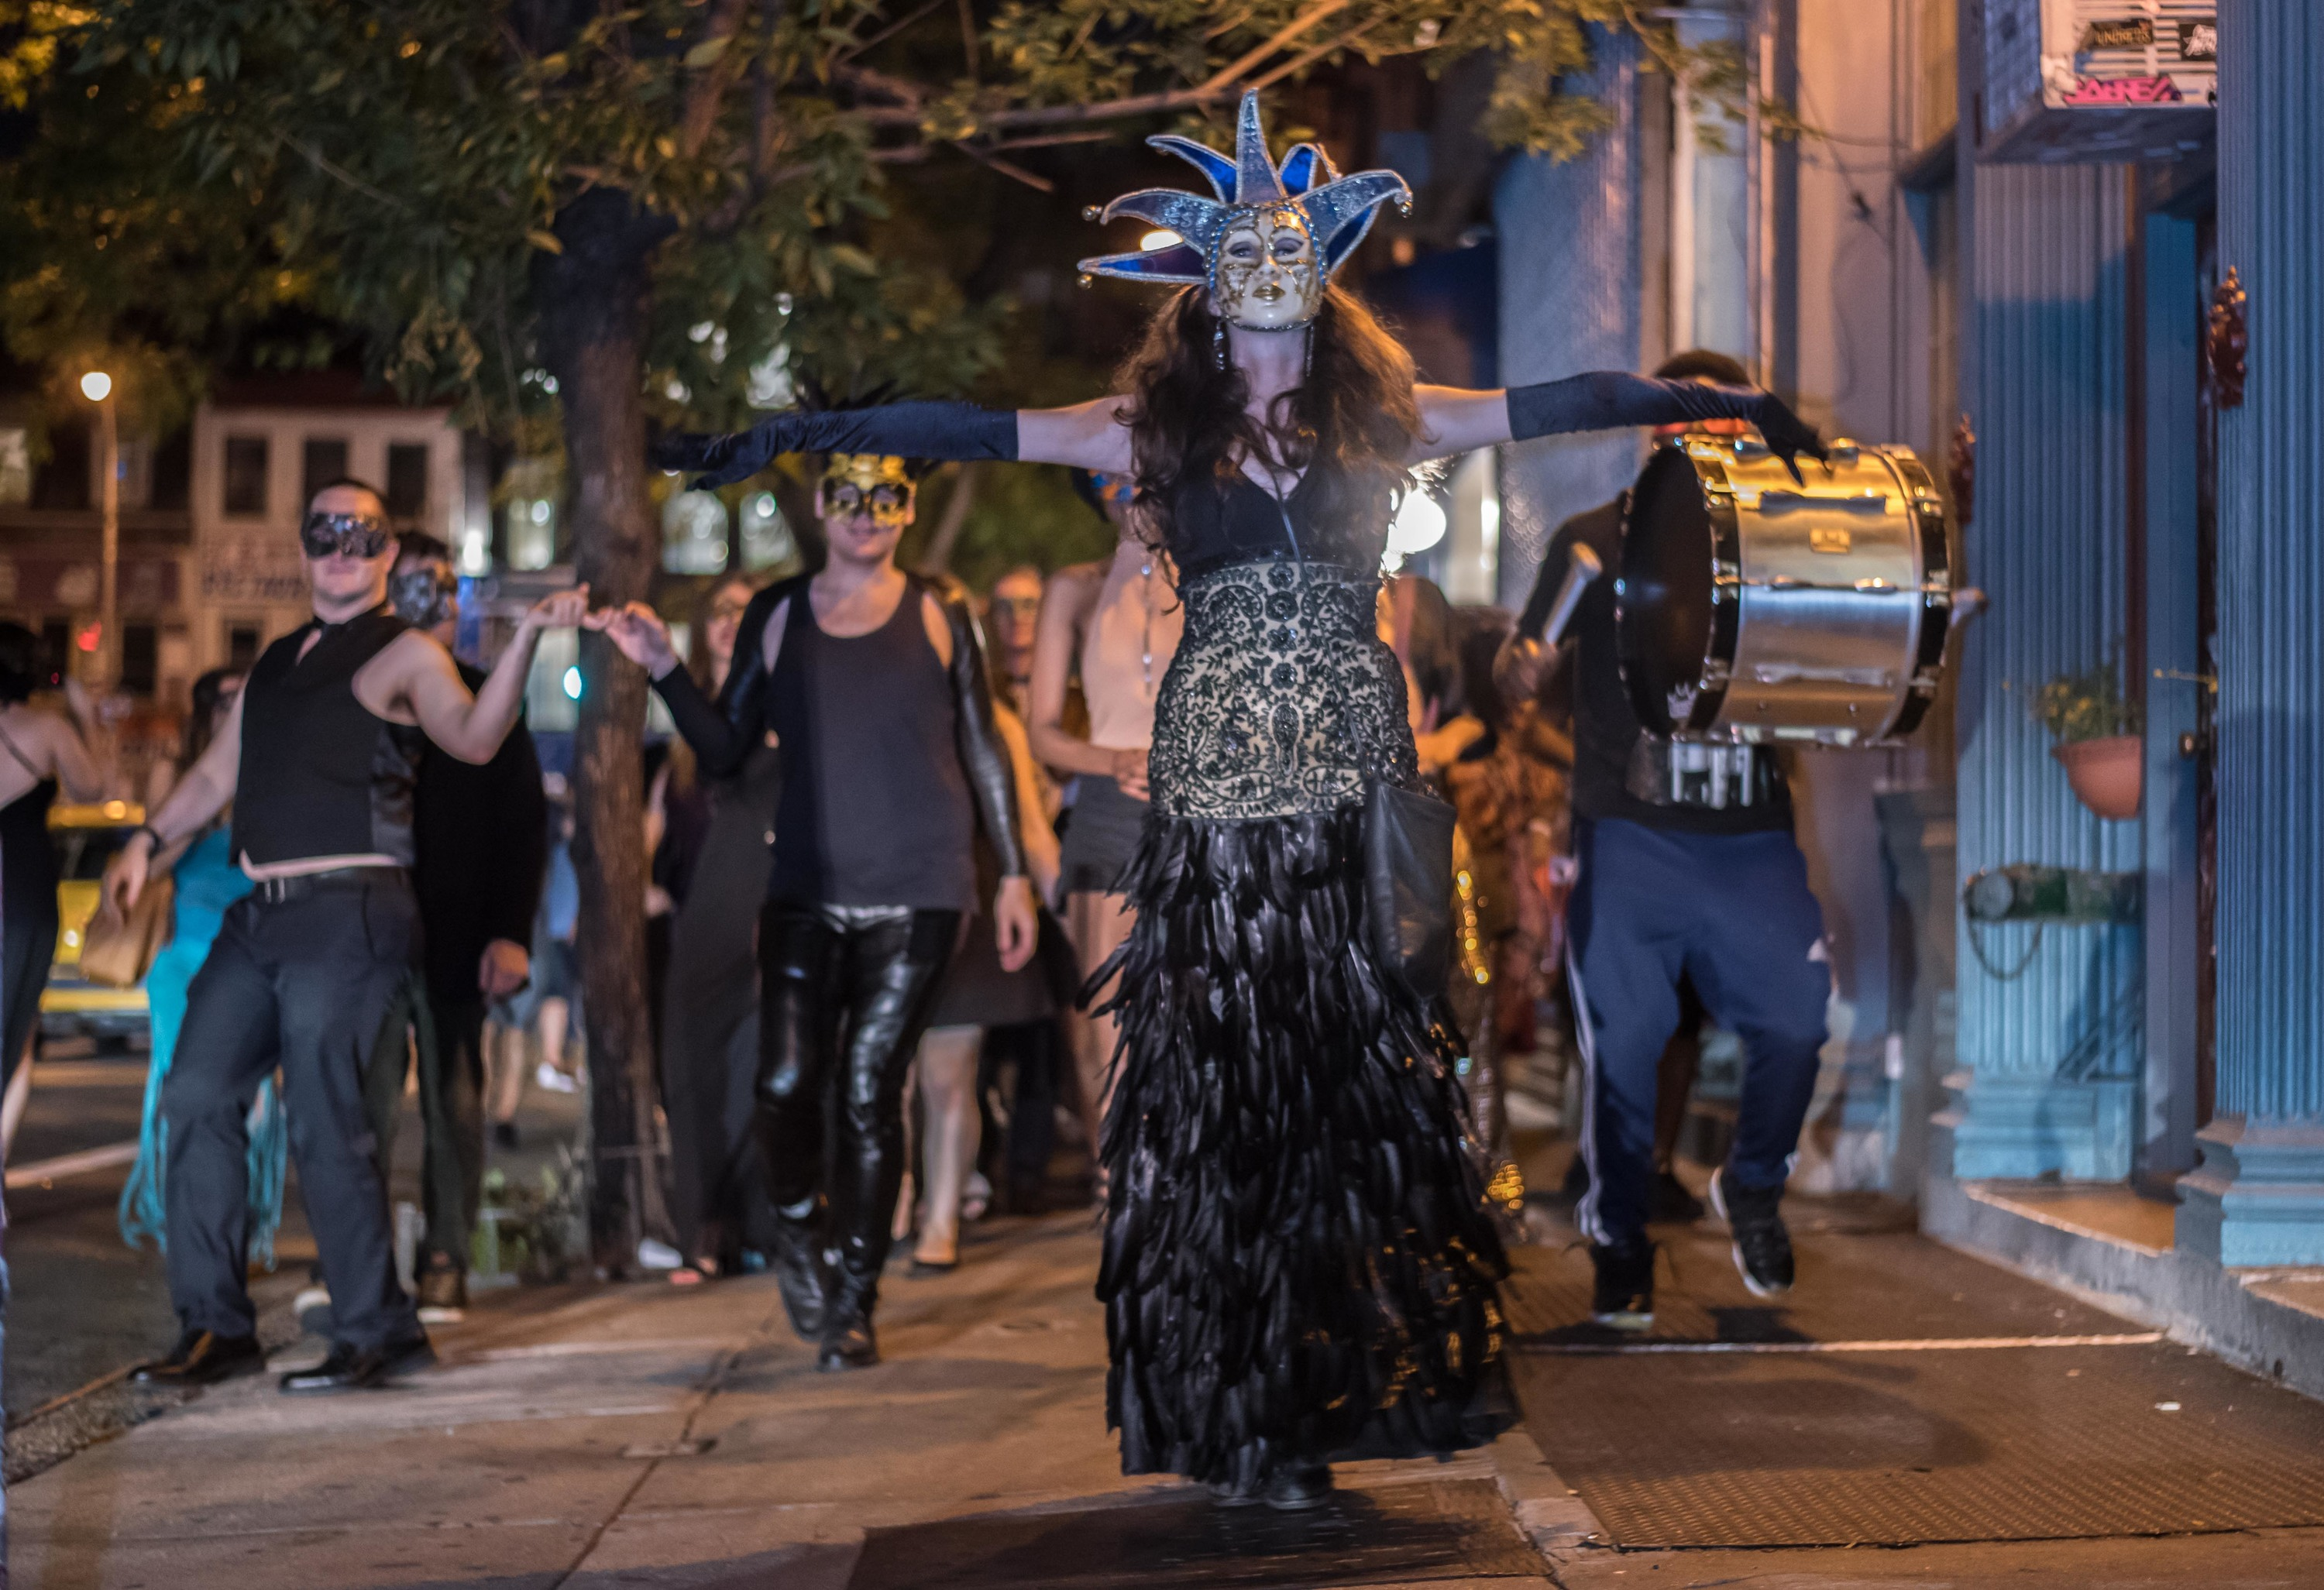 e4d25413ab4c Masquerade on the Town | Things to do in New York